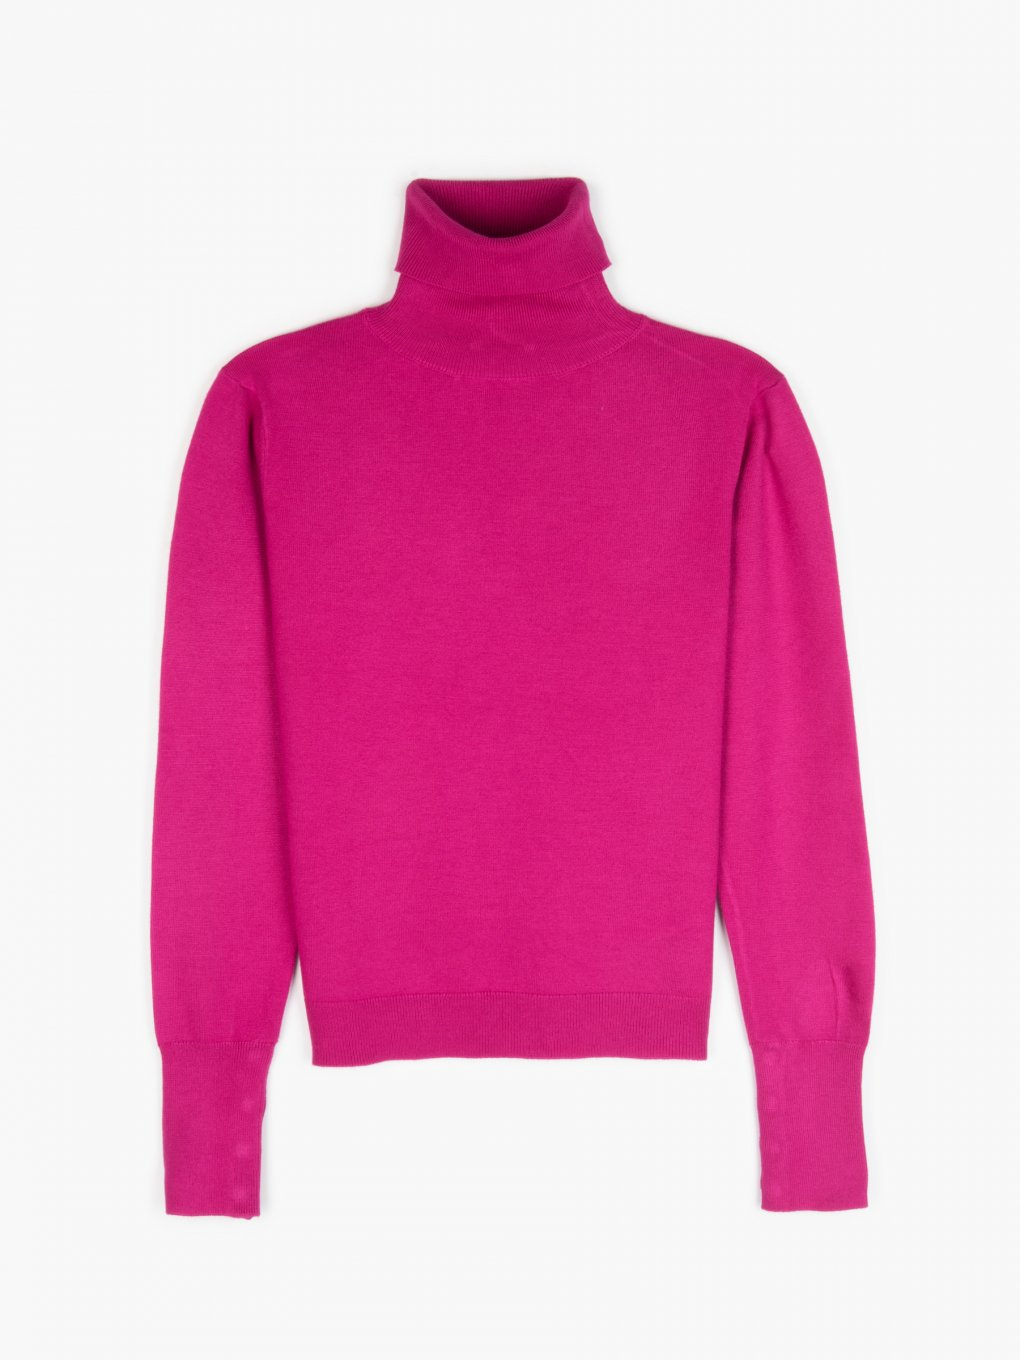 Rollneck sweater with buttons